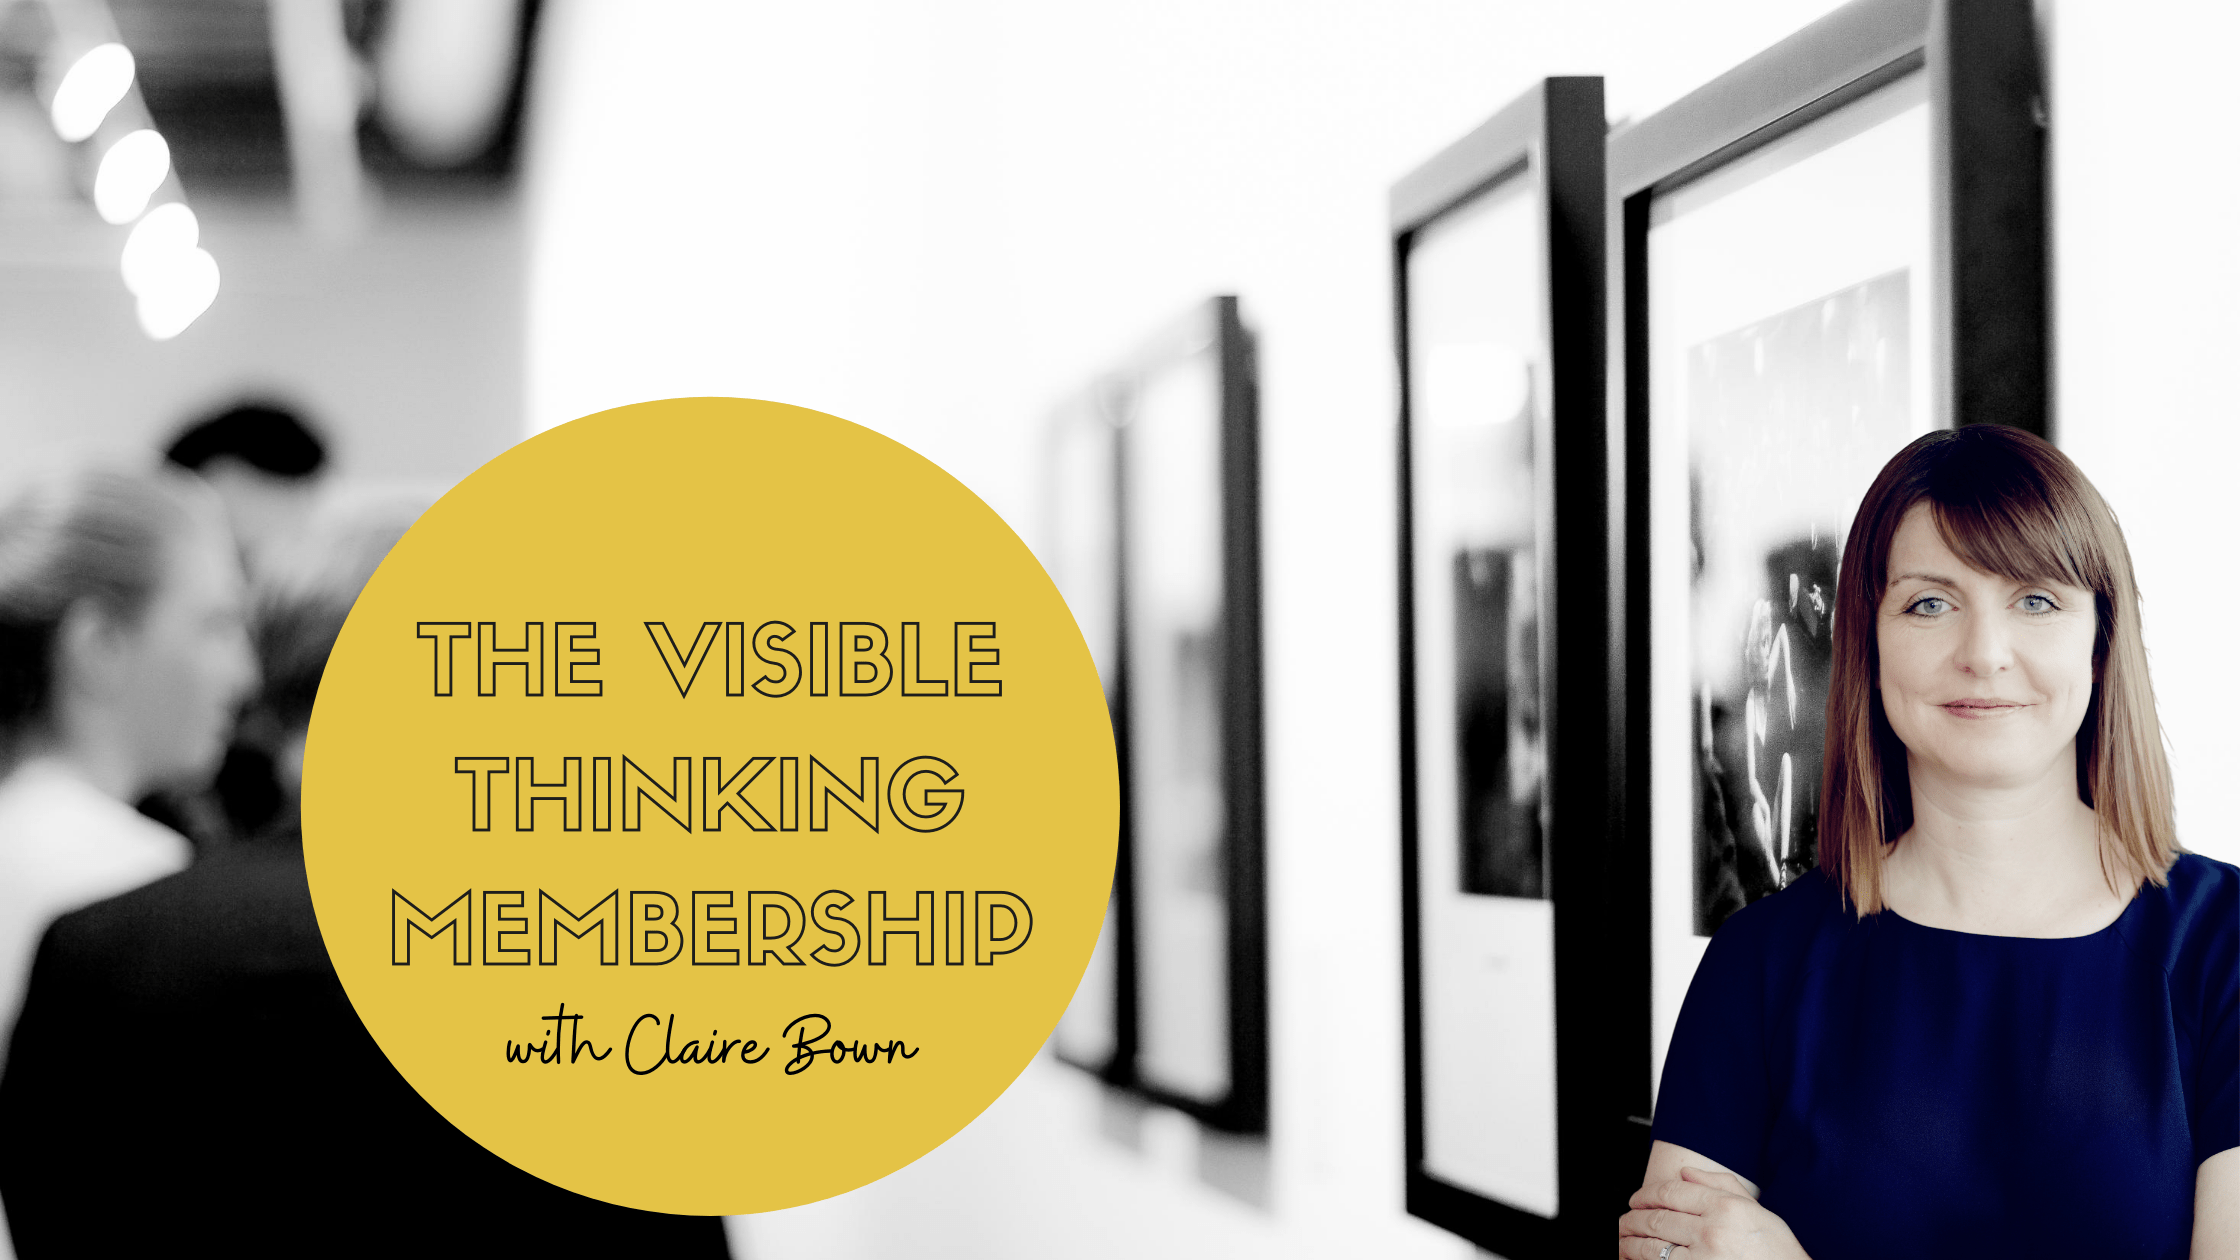 The Visible Thinking Membership with Claire Bown